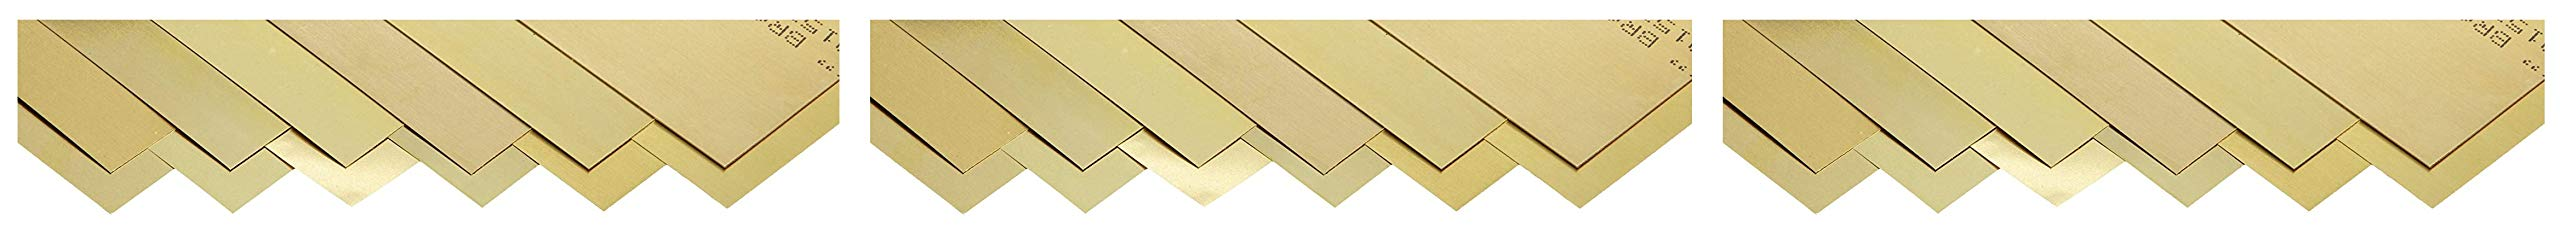 Small Parts 260 Brass Sheet, Unpolished (Mill) Finish, Half Hard Temper, 0.001-0.015'' Thickness, 6'' Width, 12'' Length (Pack of 12) (Тhree Pаck) by Small Parts